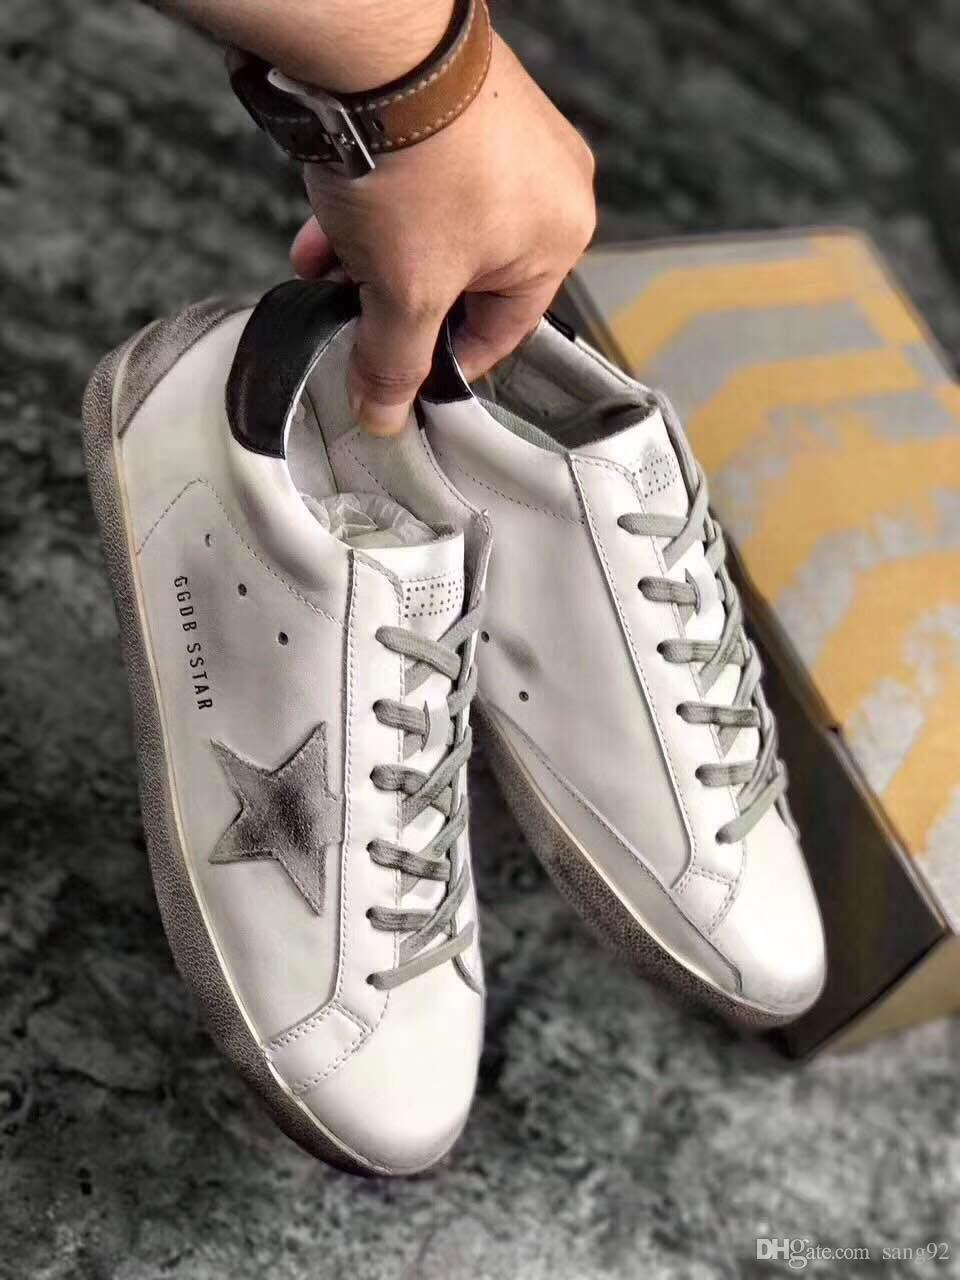 678b2434339837 Italy Brand Handwork Do The Old Shoes Leather Golden Goose GGDB Trend  SuperStar Men Women Casual Grey Cord 34 44 Sneakers Office Shoes From  Sang92